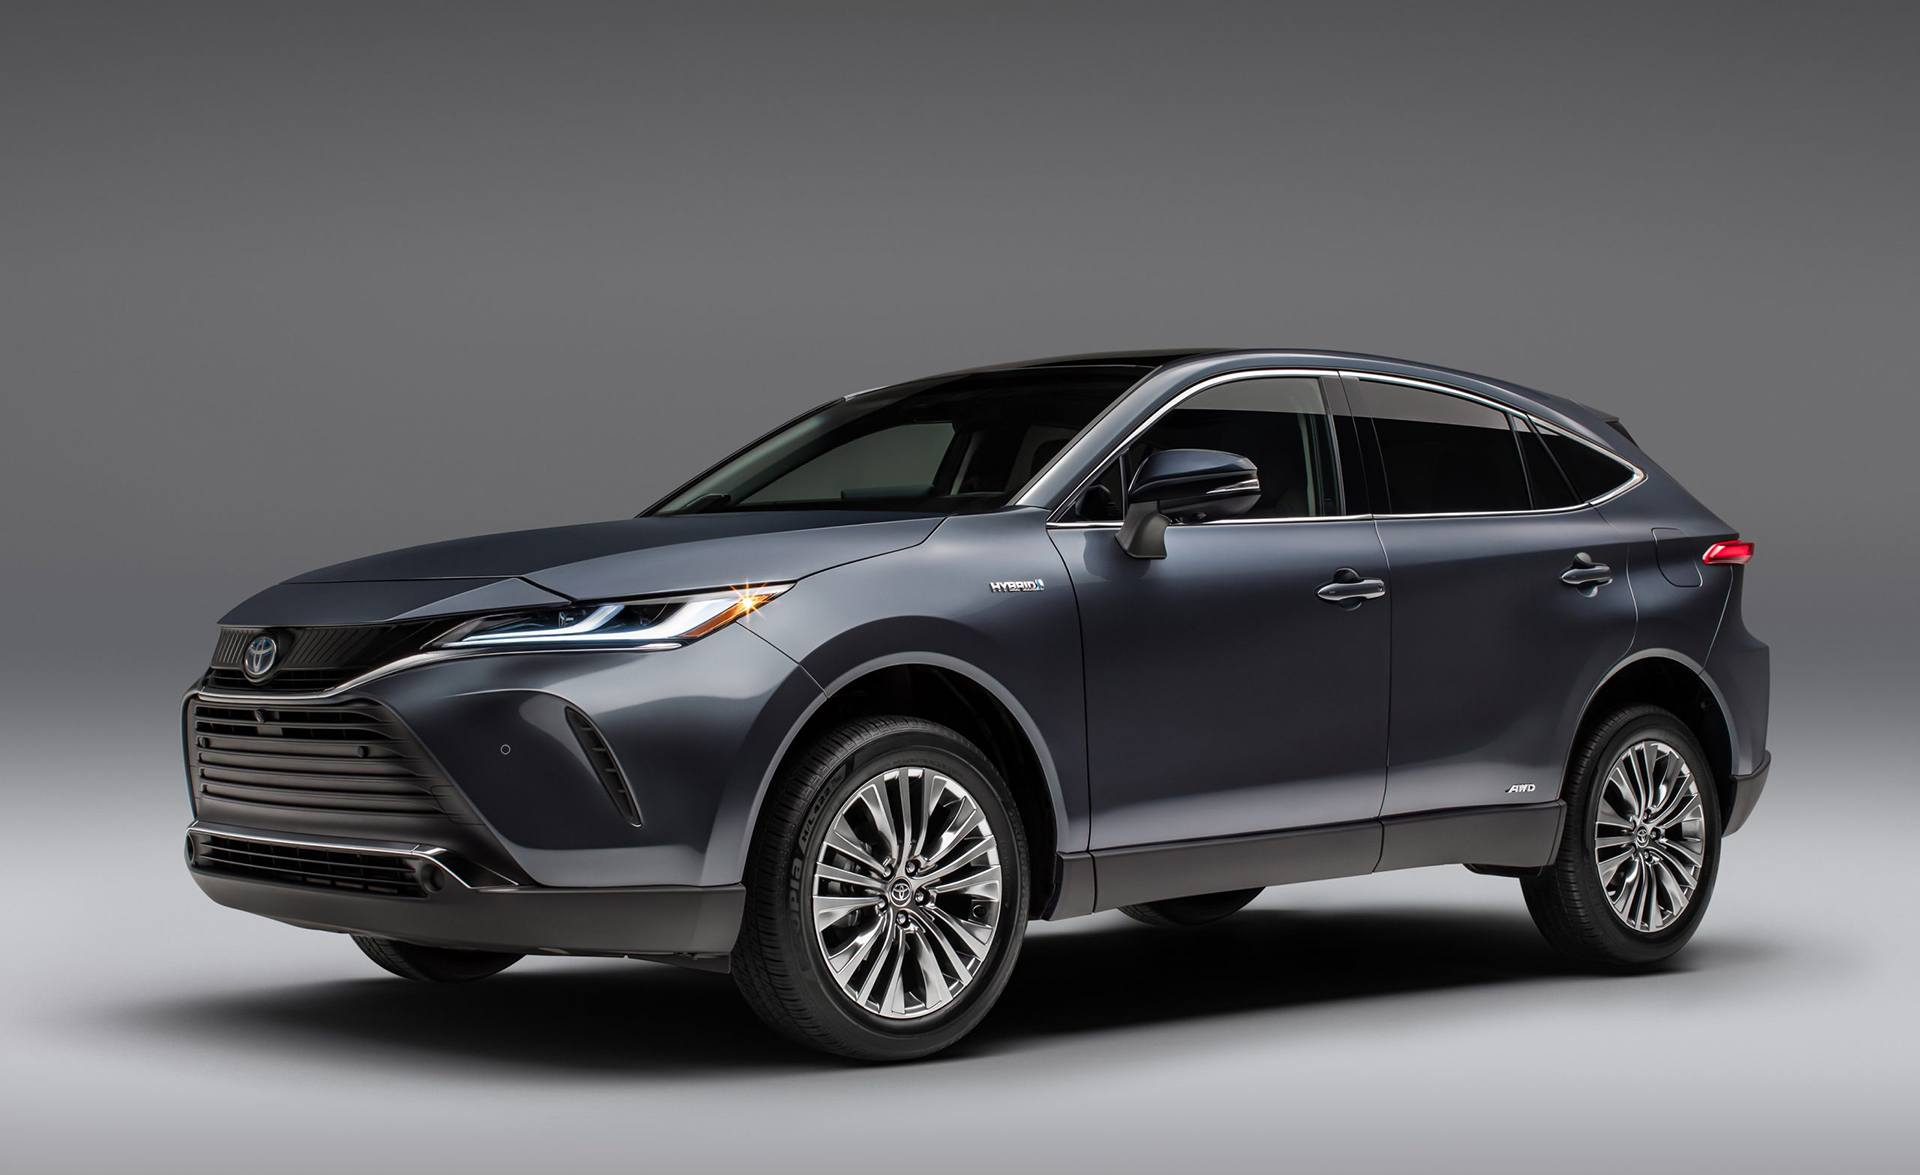 2021 toyota venza brings back old name for new crossover